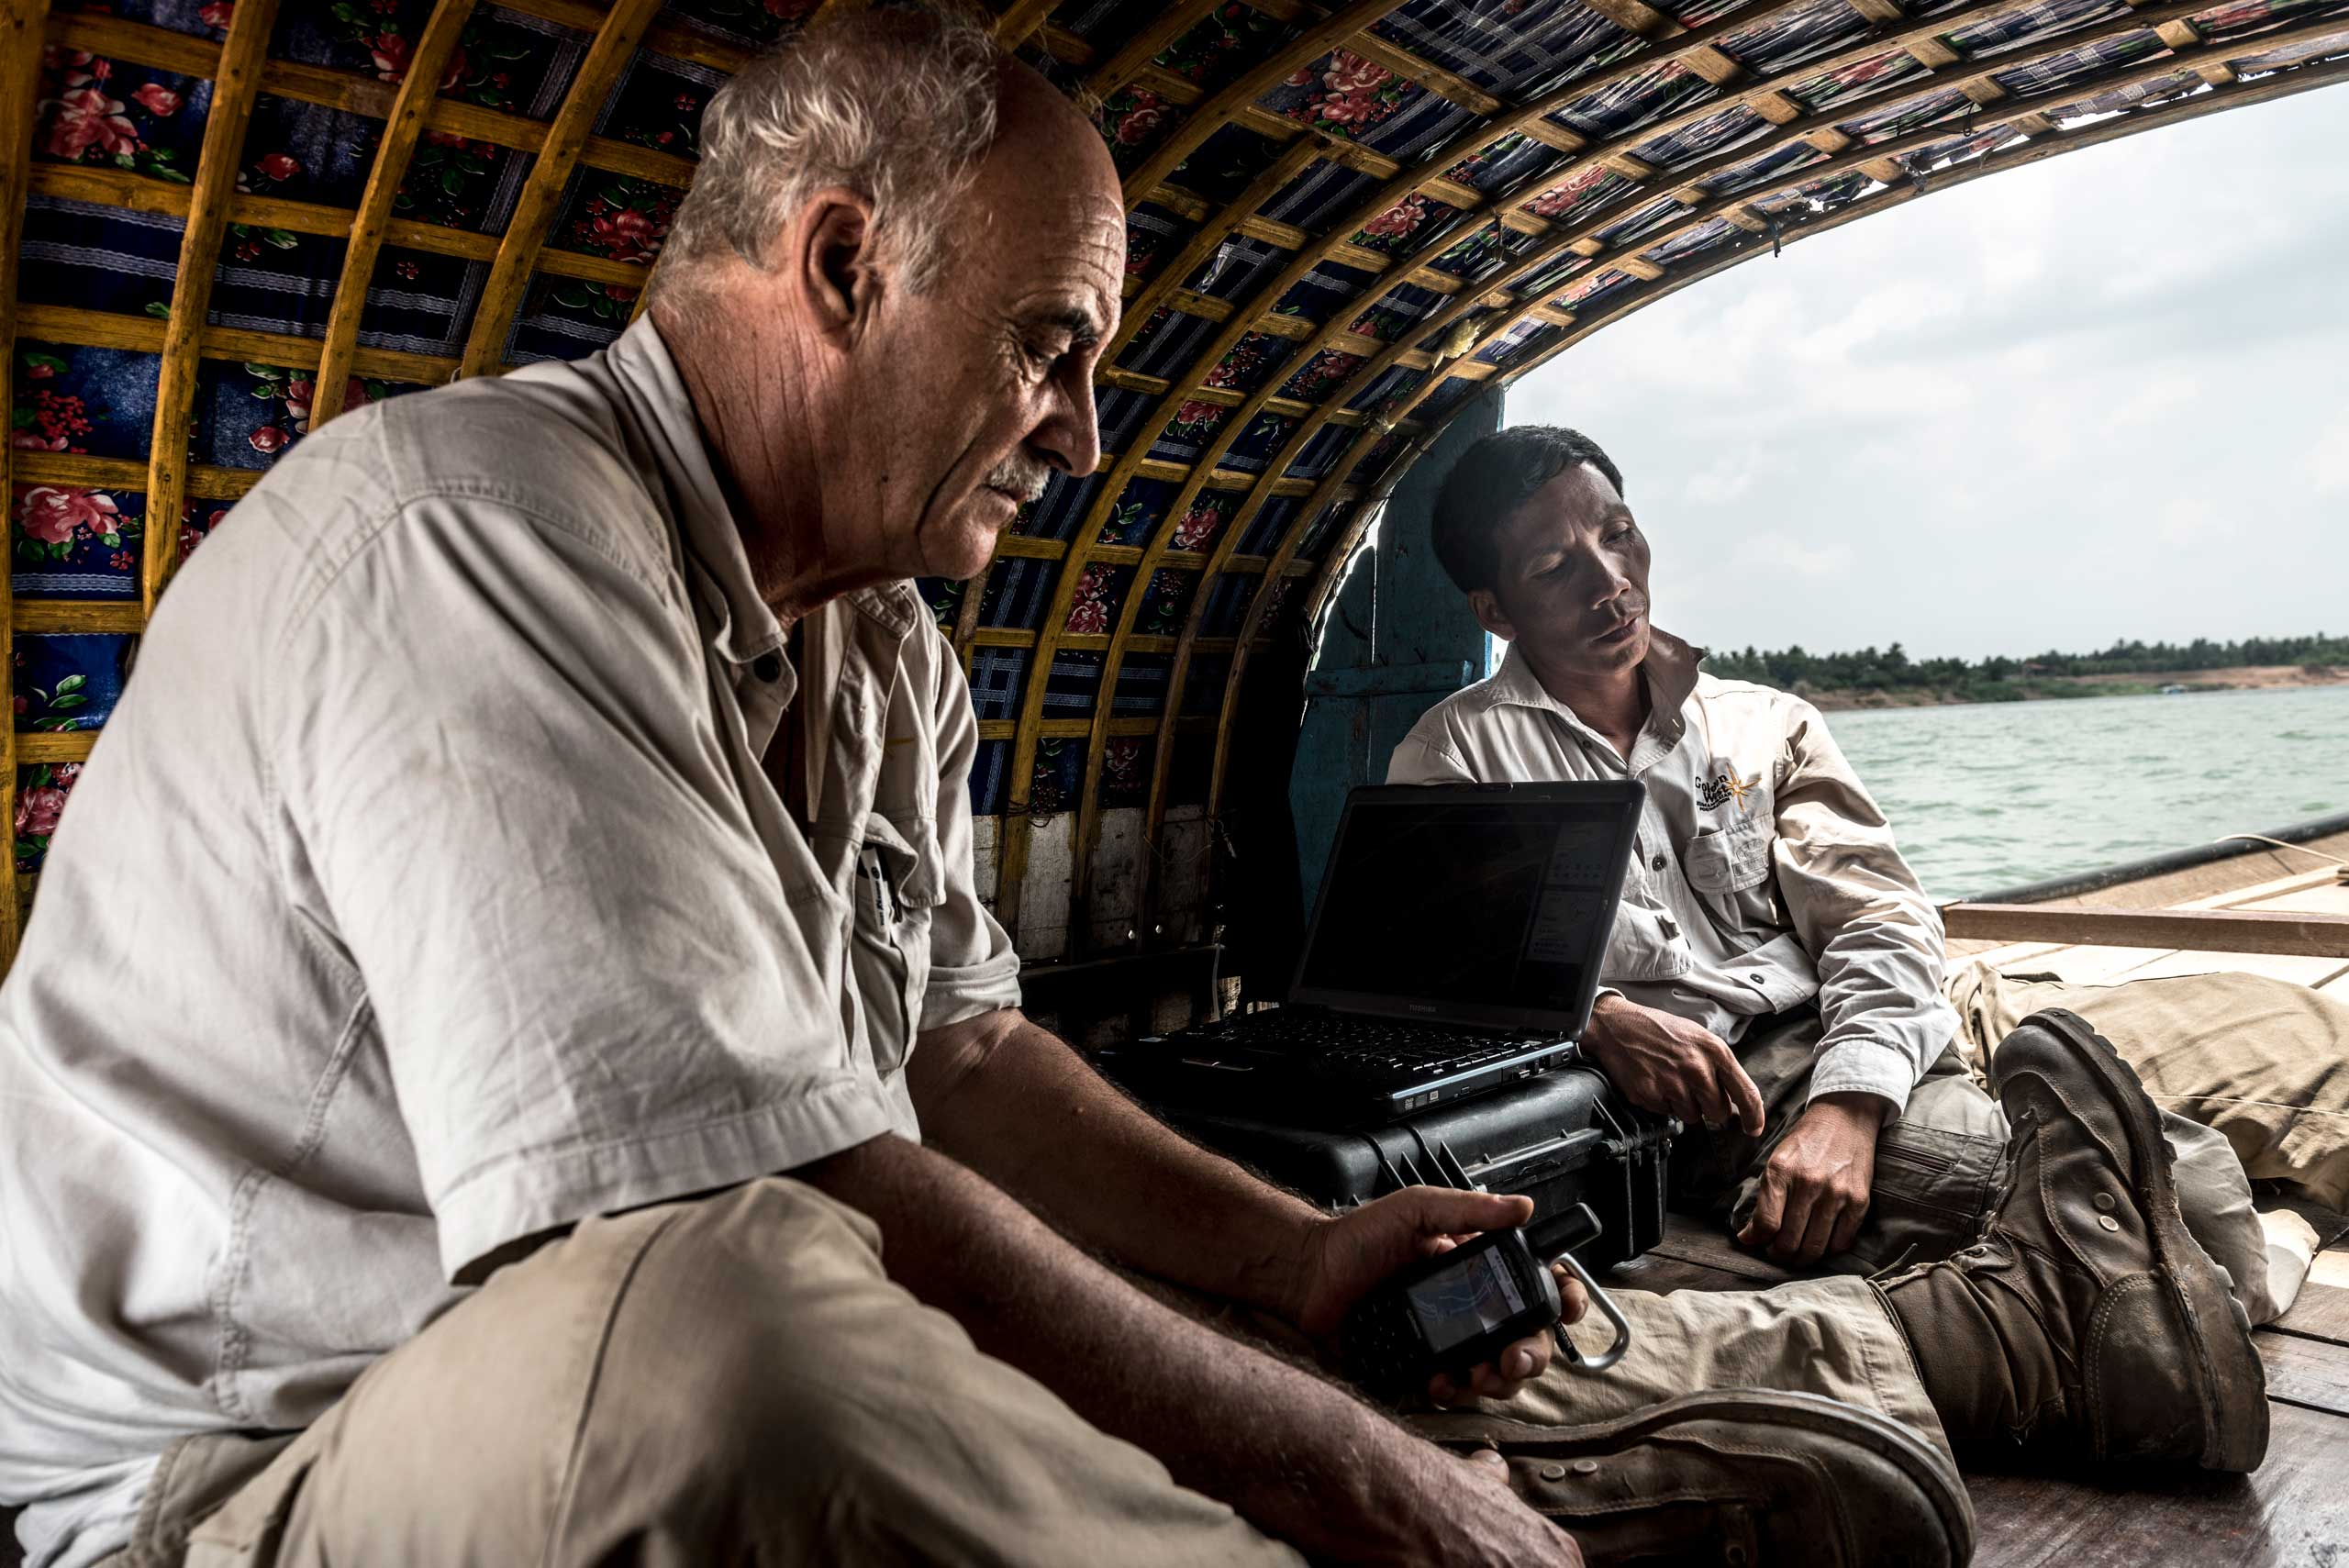 Marcel Durocher and Heang Sambo, employees of Golden West Humanitarian Organization, spend up to six hours a day on a boat when on a river survey. Using Sonar, Marcel and Sambo map the riverbed identifying sunken boats and potential UXO in April 2015. The Tonle Sap and Mekong rivers move vast amounts of sediment, making the process of scanning the river beds difficult, what is identified one year can be covered by sediment the next.